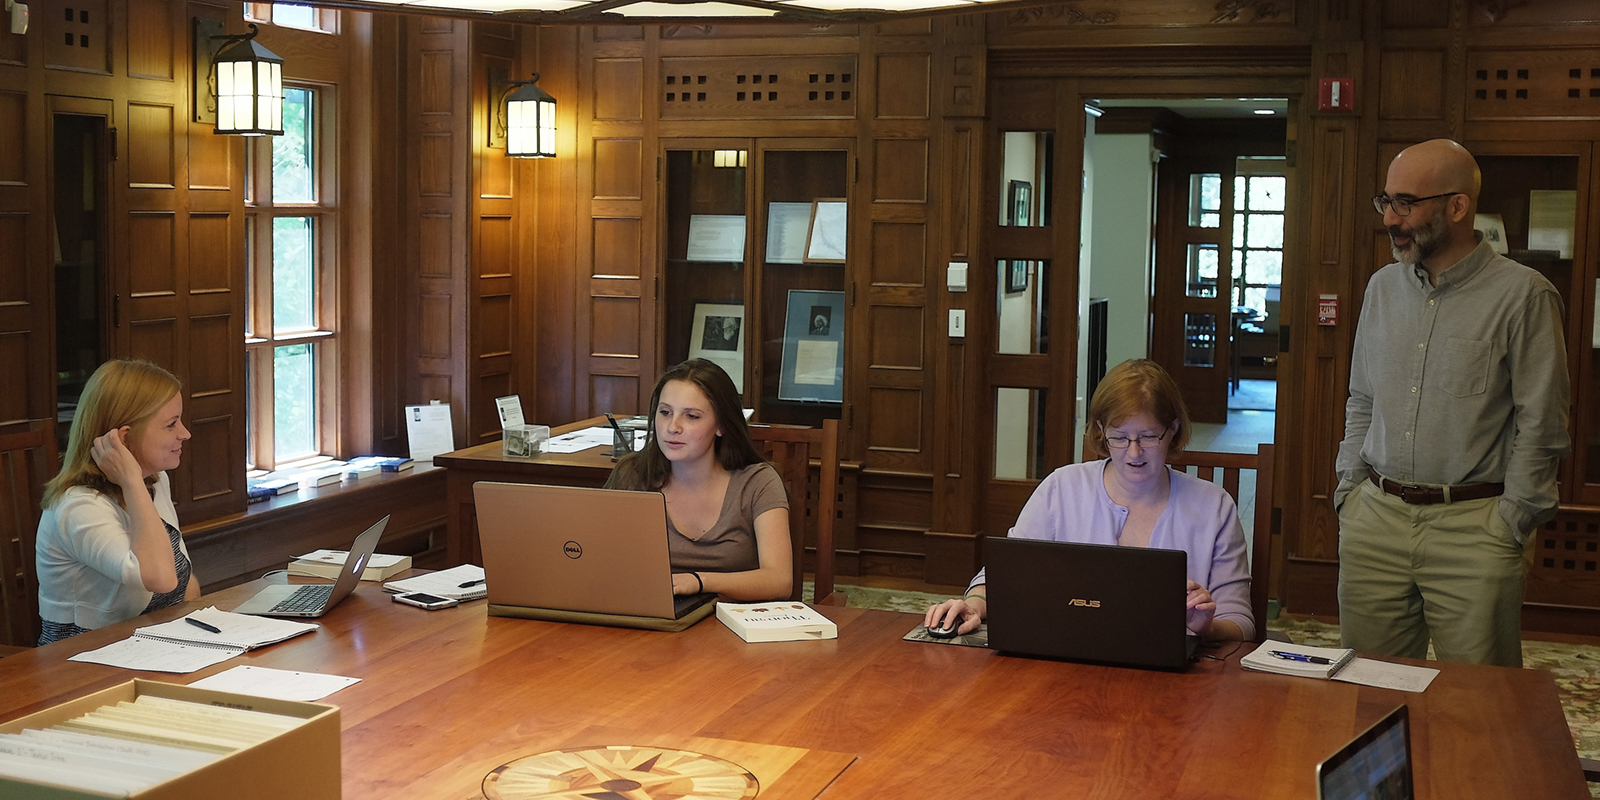 Honors College students Lindsay Blount, Kale Connerty and Erin Monahan work at the Thoreau Institute library with curator Jeffrey S. Cramer.